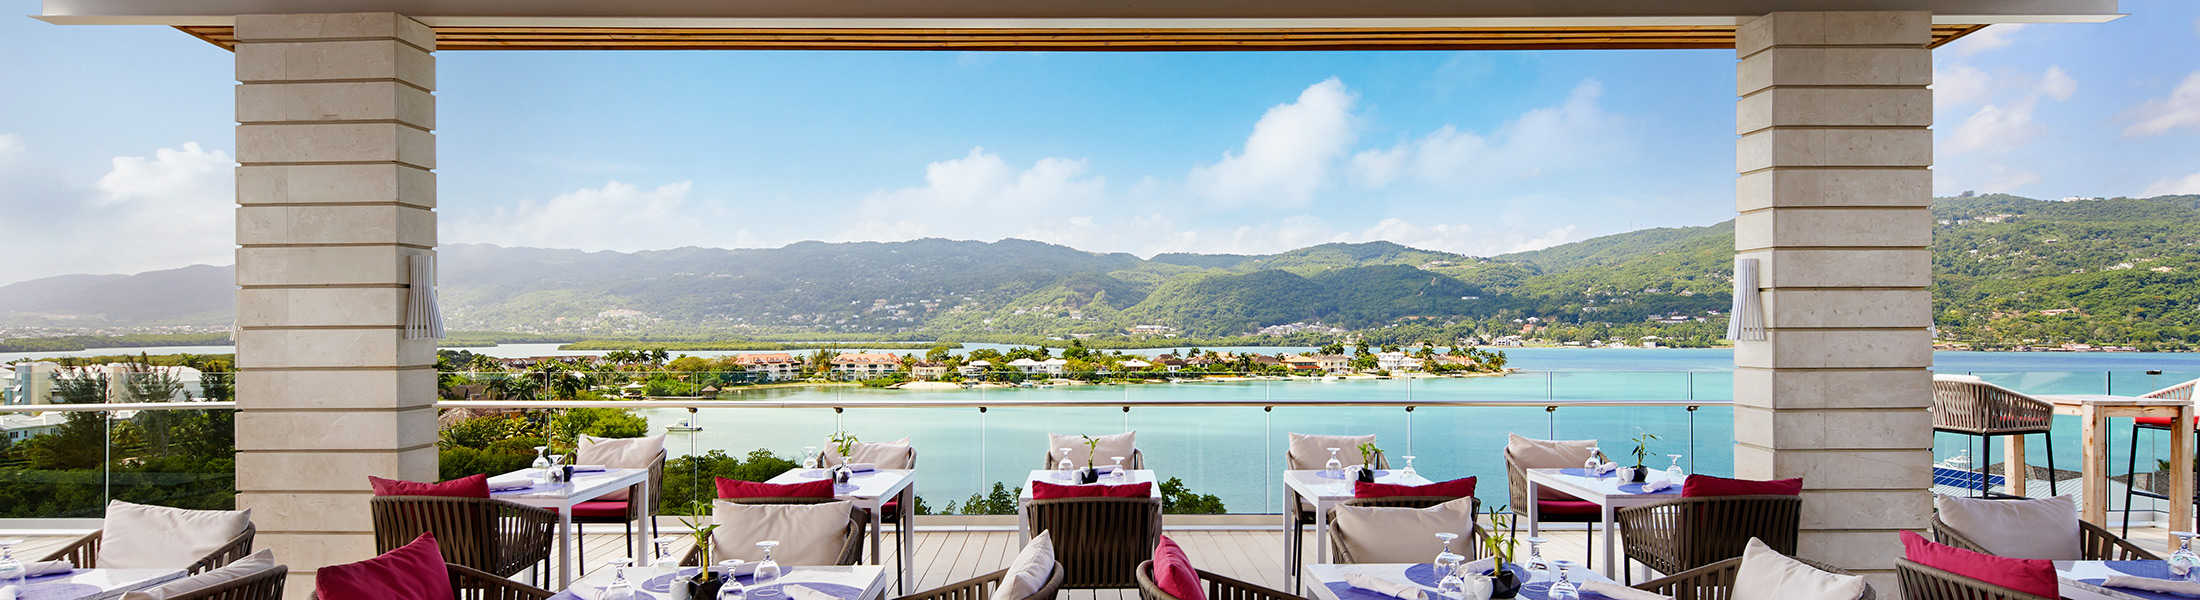 Open air restaurant with ocean views at Breathless Montego Bay